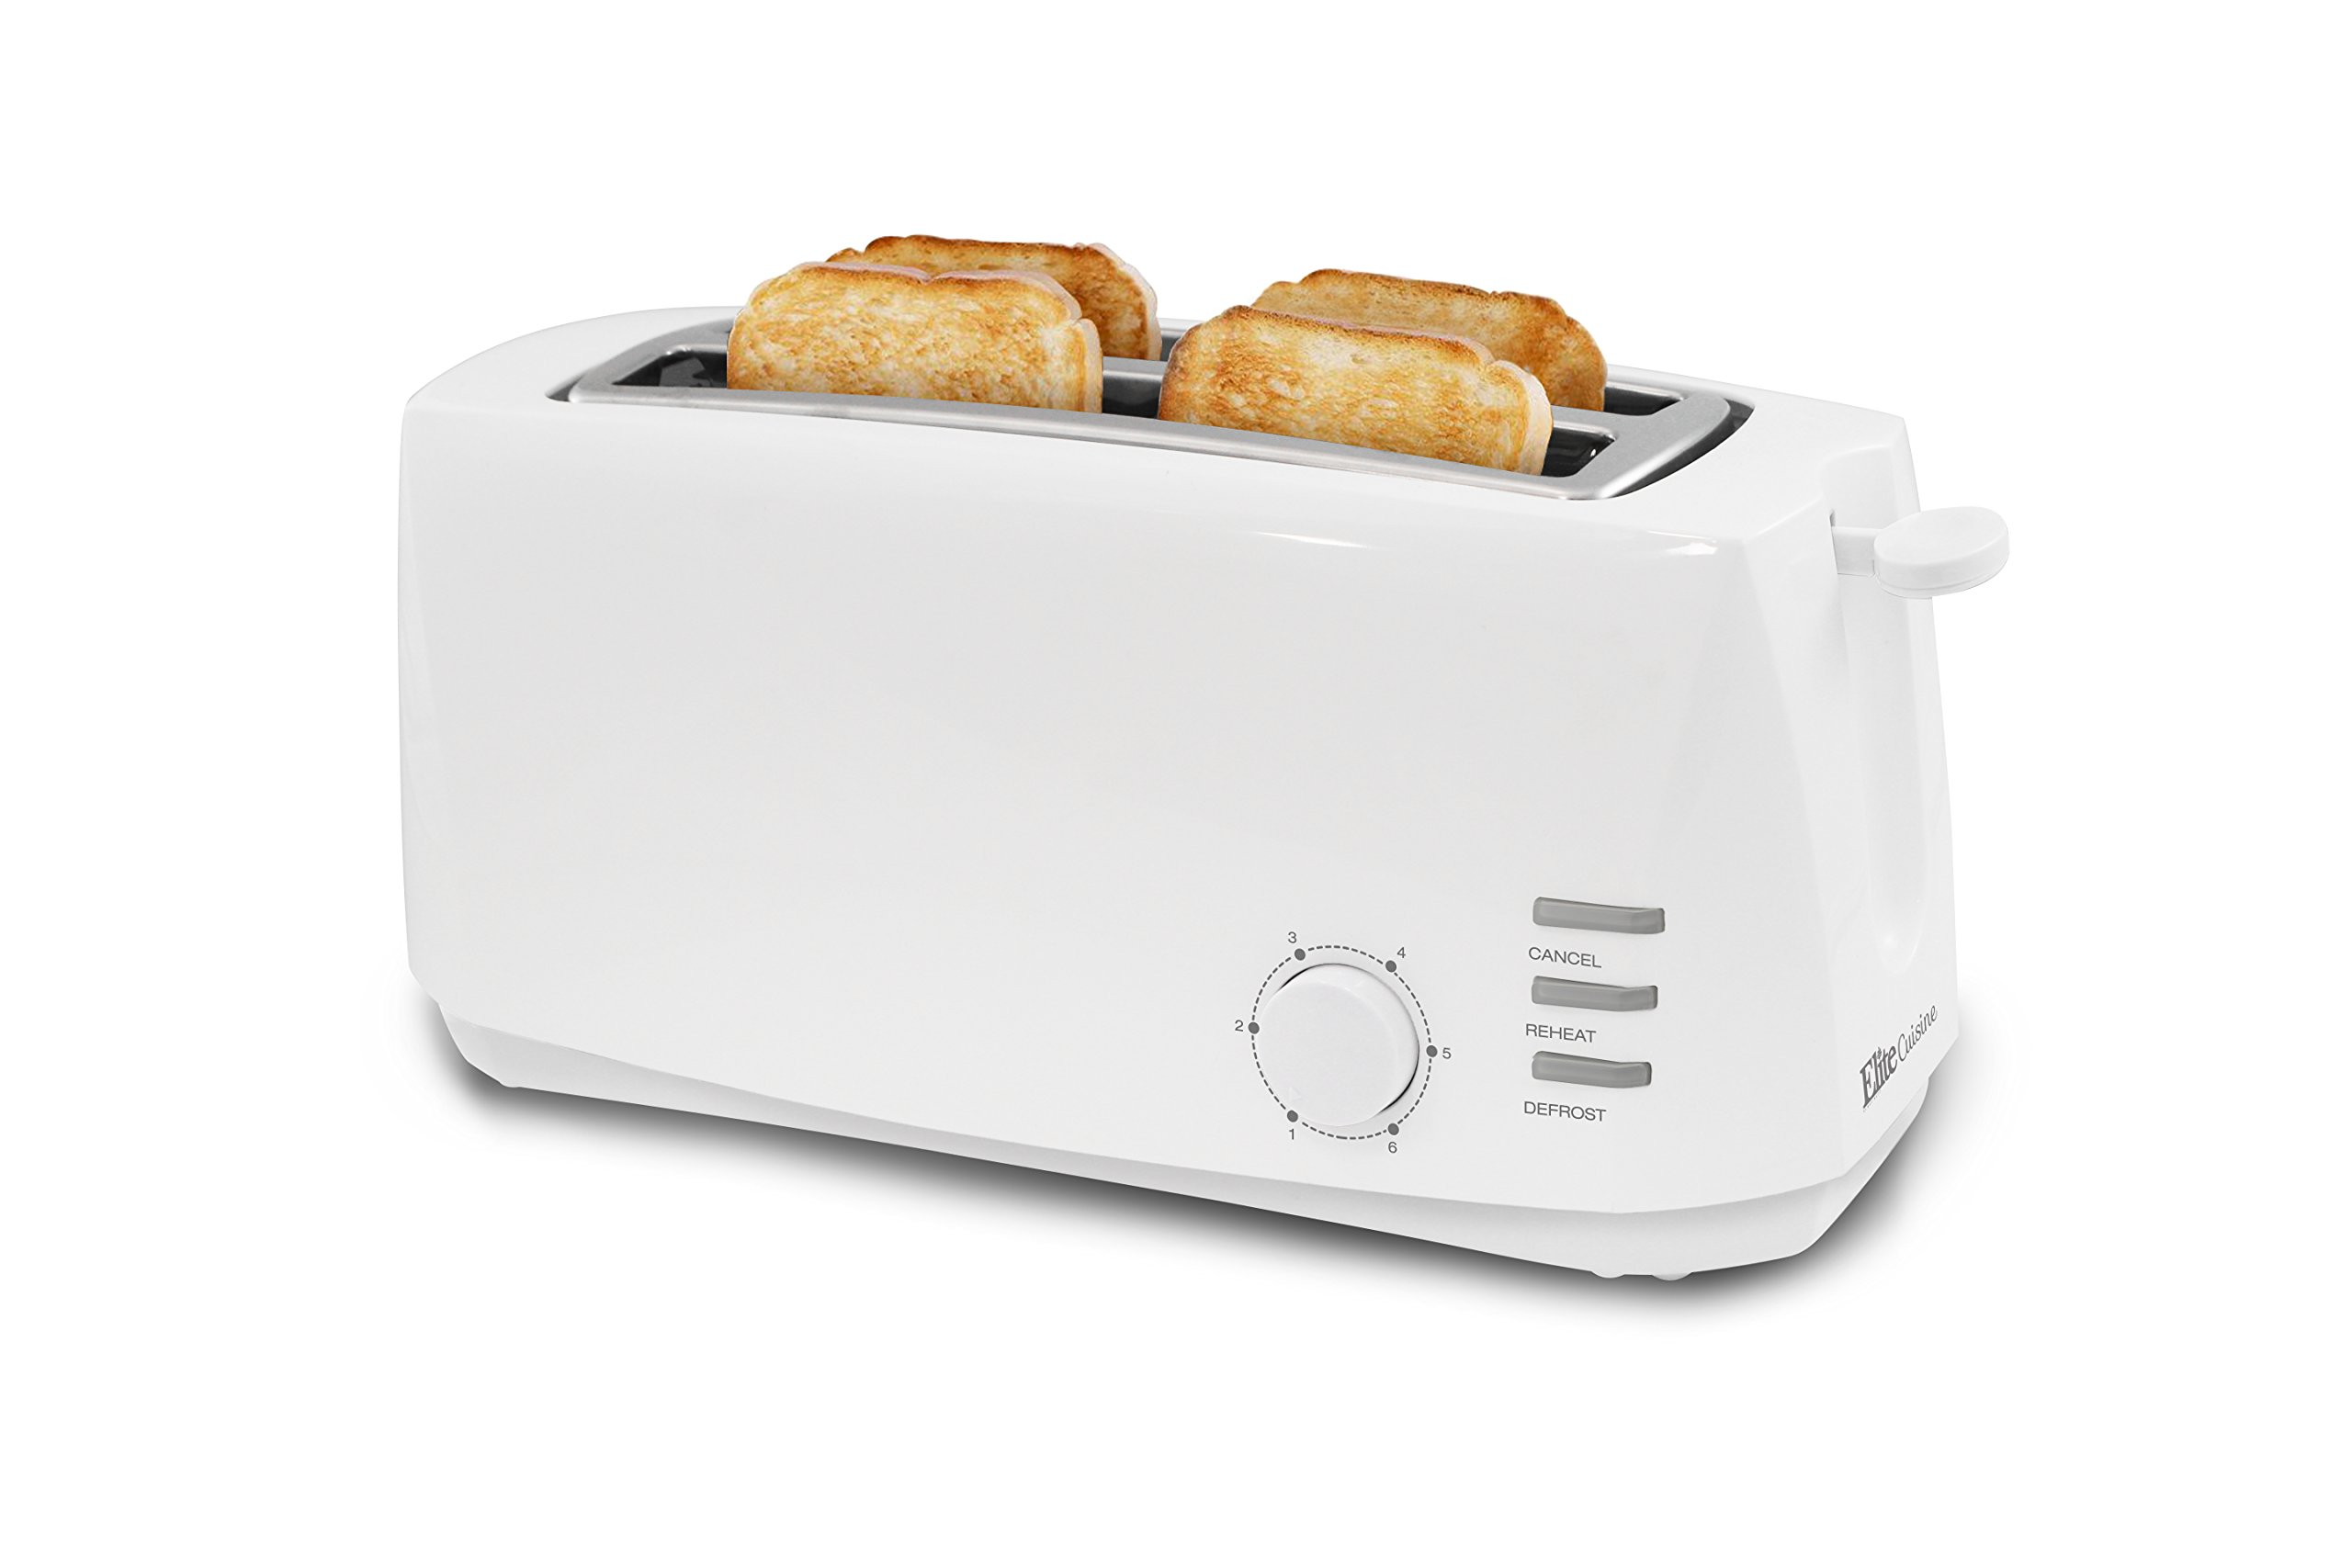 Elite Cuisine ECT-4829 Long Cool Touch Toaster with Extra Wide 1.5'' Slots for Bagels and Specialty Breads, 4 Slices, White